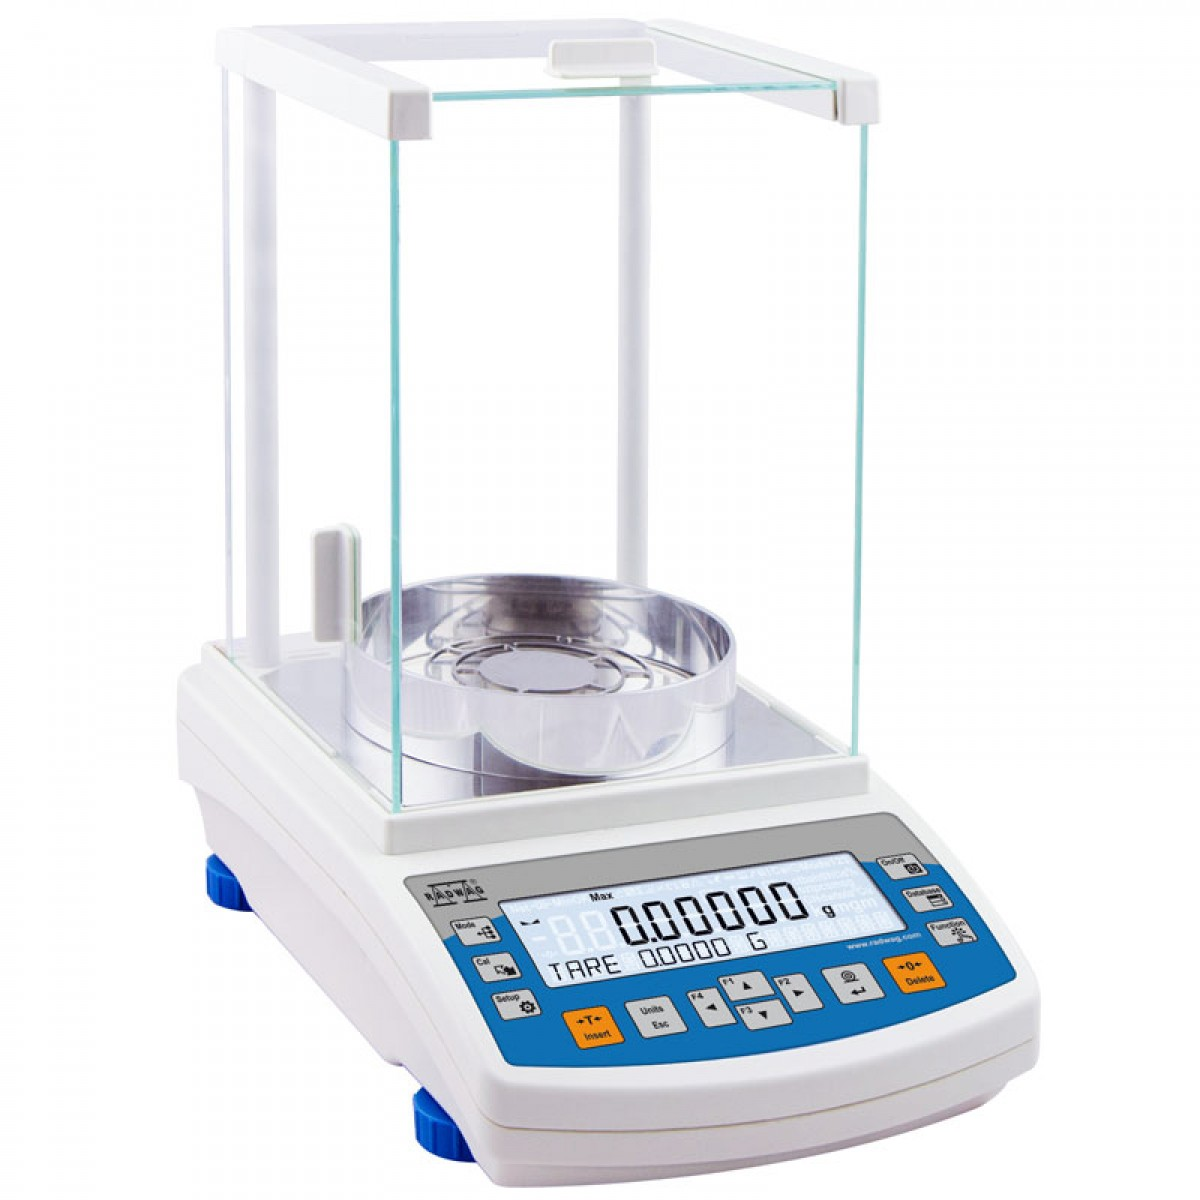 Balance Laboratory Apparatus Radwag As 82 220 R2 Analytical Lab Balance Free Shipping